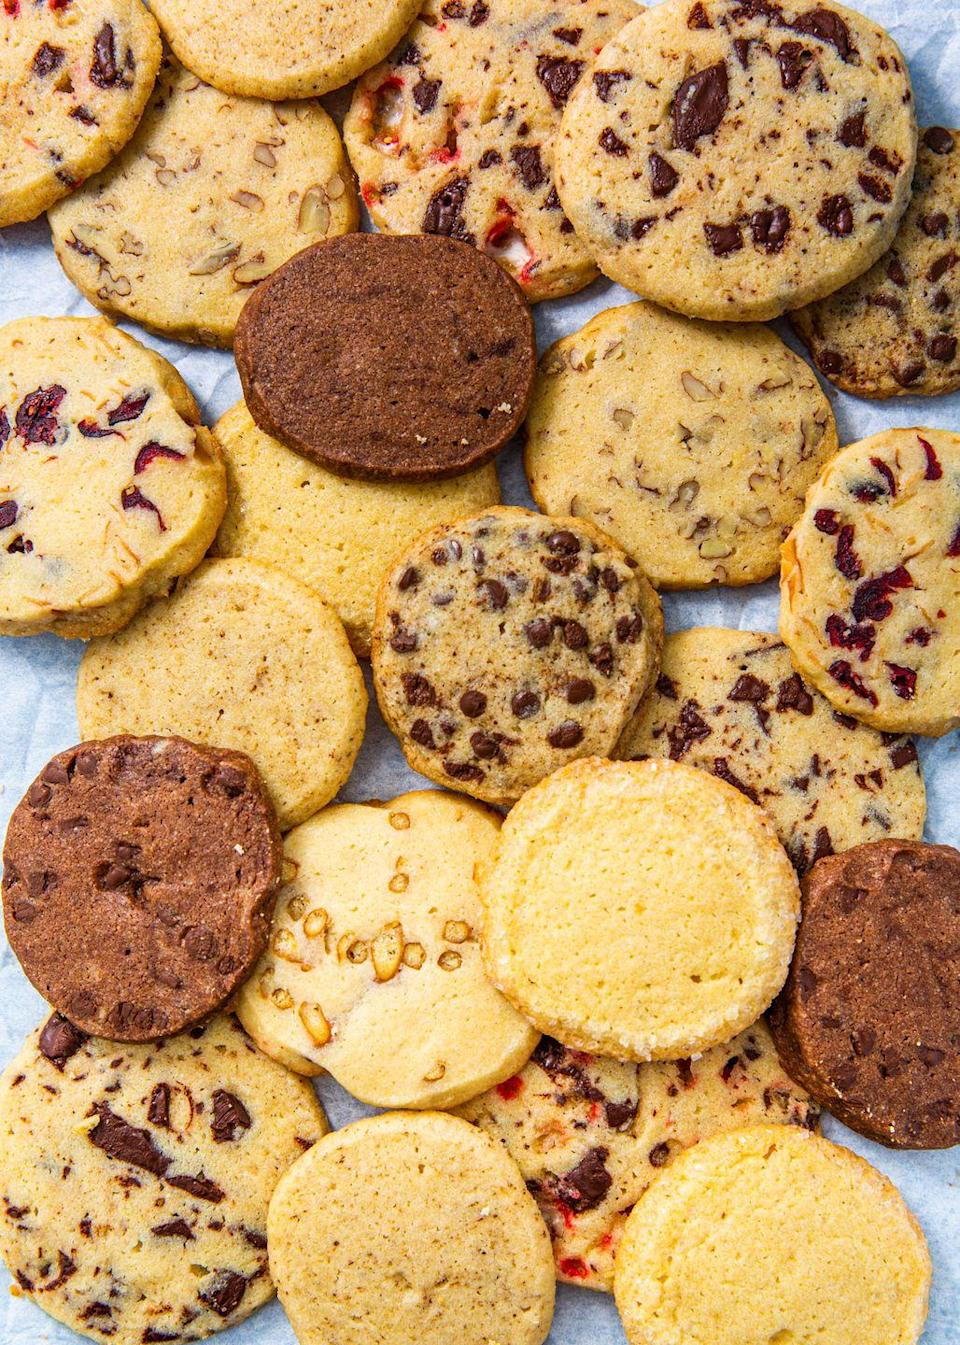 """<p>This way, you'll always have cookie dough on hand.</p><p>Get the recipe from <a href=""""https://www.delish.com/holiday-recipes/christmas/a30210300/easy-icebox-cookies-recipe/"""" rel=""""nofollow noopener"""" target=""""_blank"""" data-ylk=""""slk:Delish"""" class=""""link rapid-noclick-resp"""">Delish</a>.</p>"""